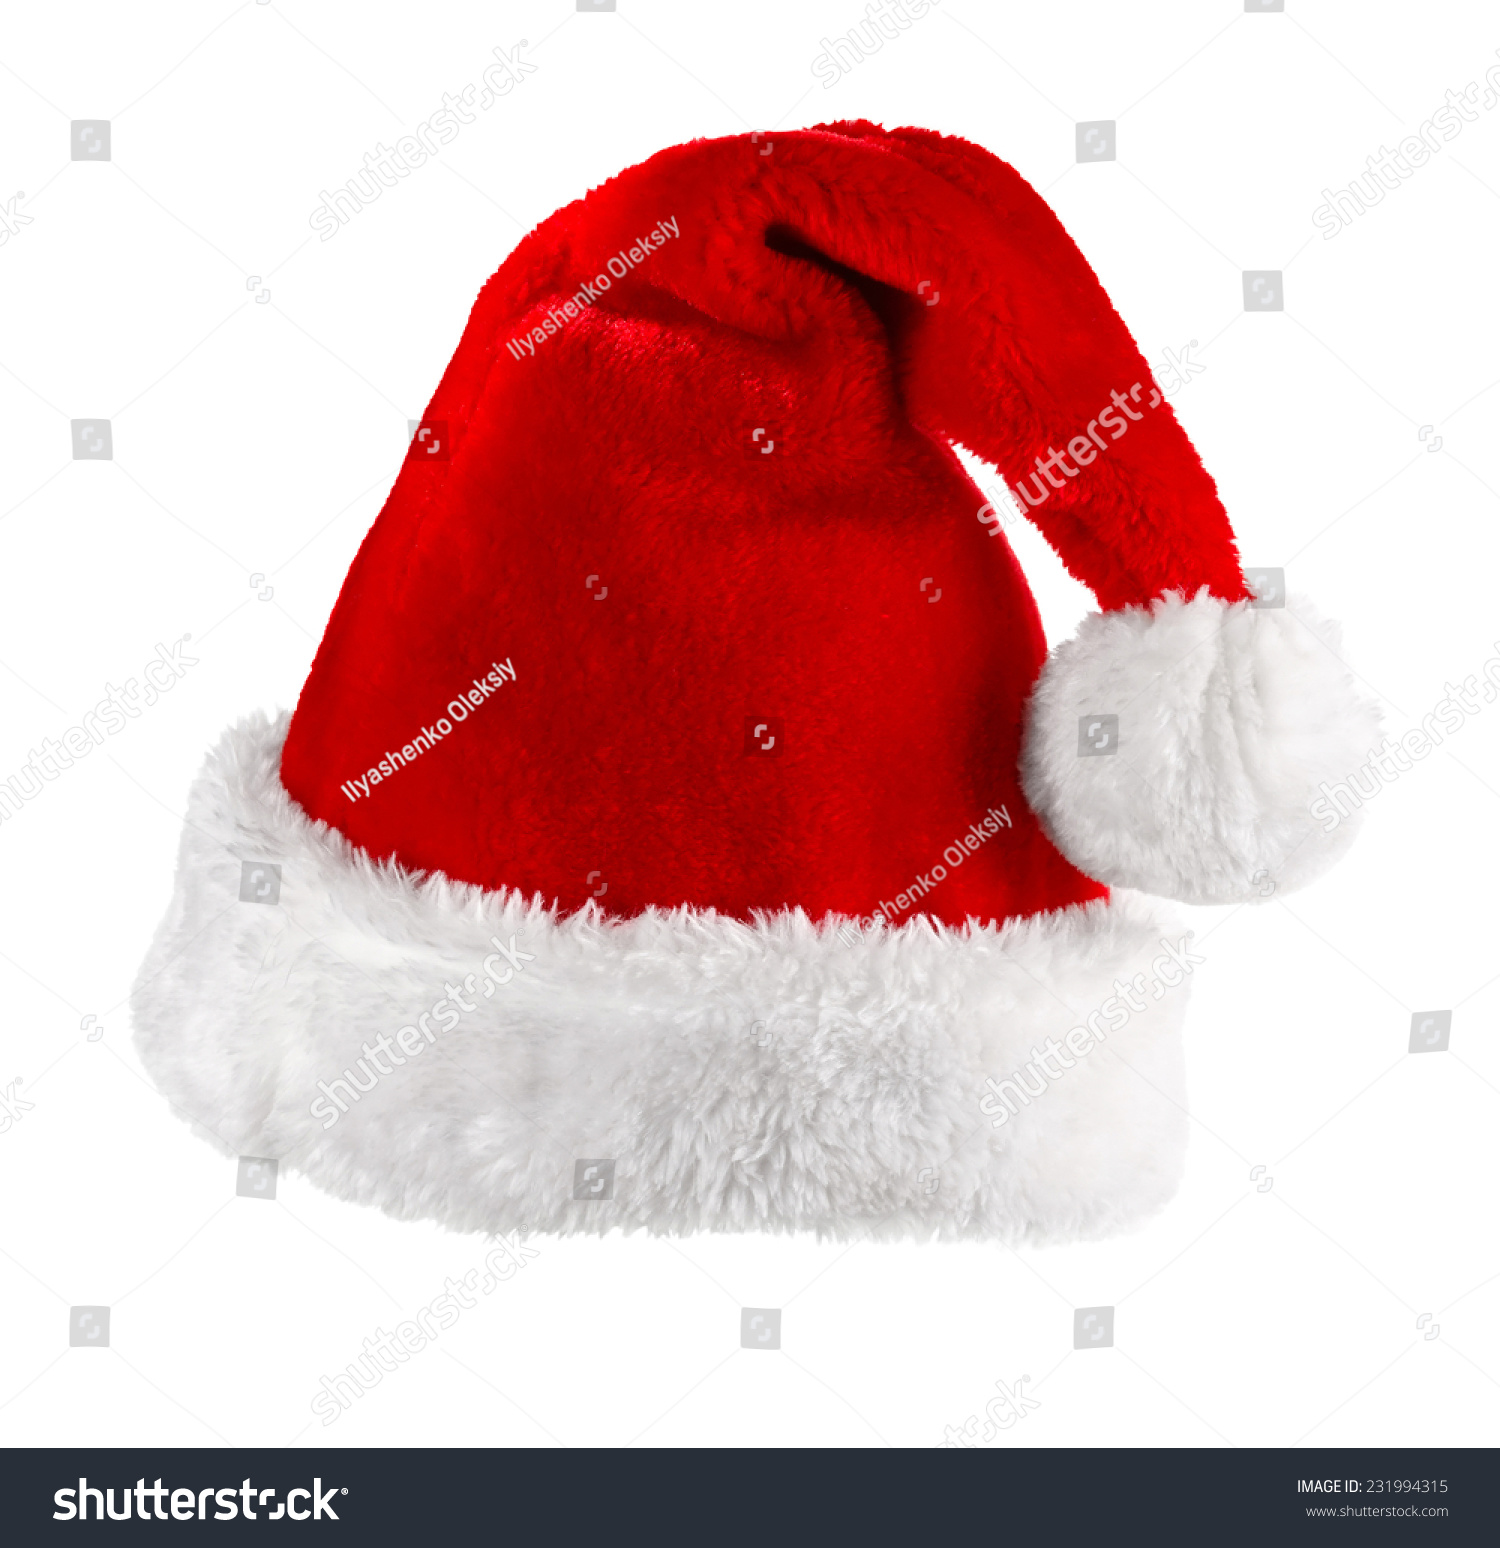 singles in santa claus Santa claus is a town in spencer county, indiana, united states, in the southwestern part of the state located in carter, clay and harrison townships, it sits.